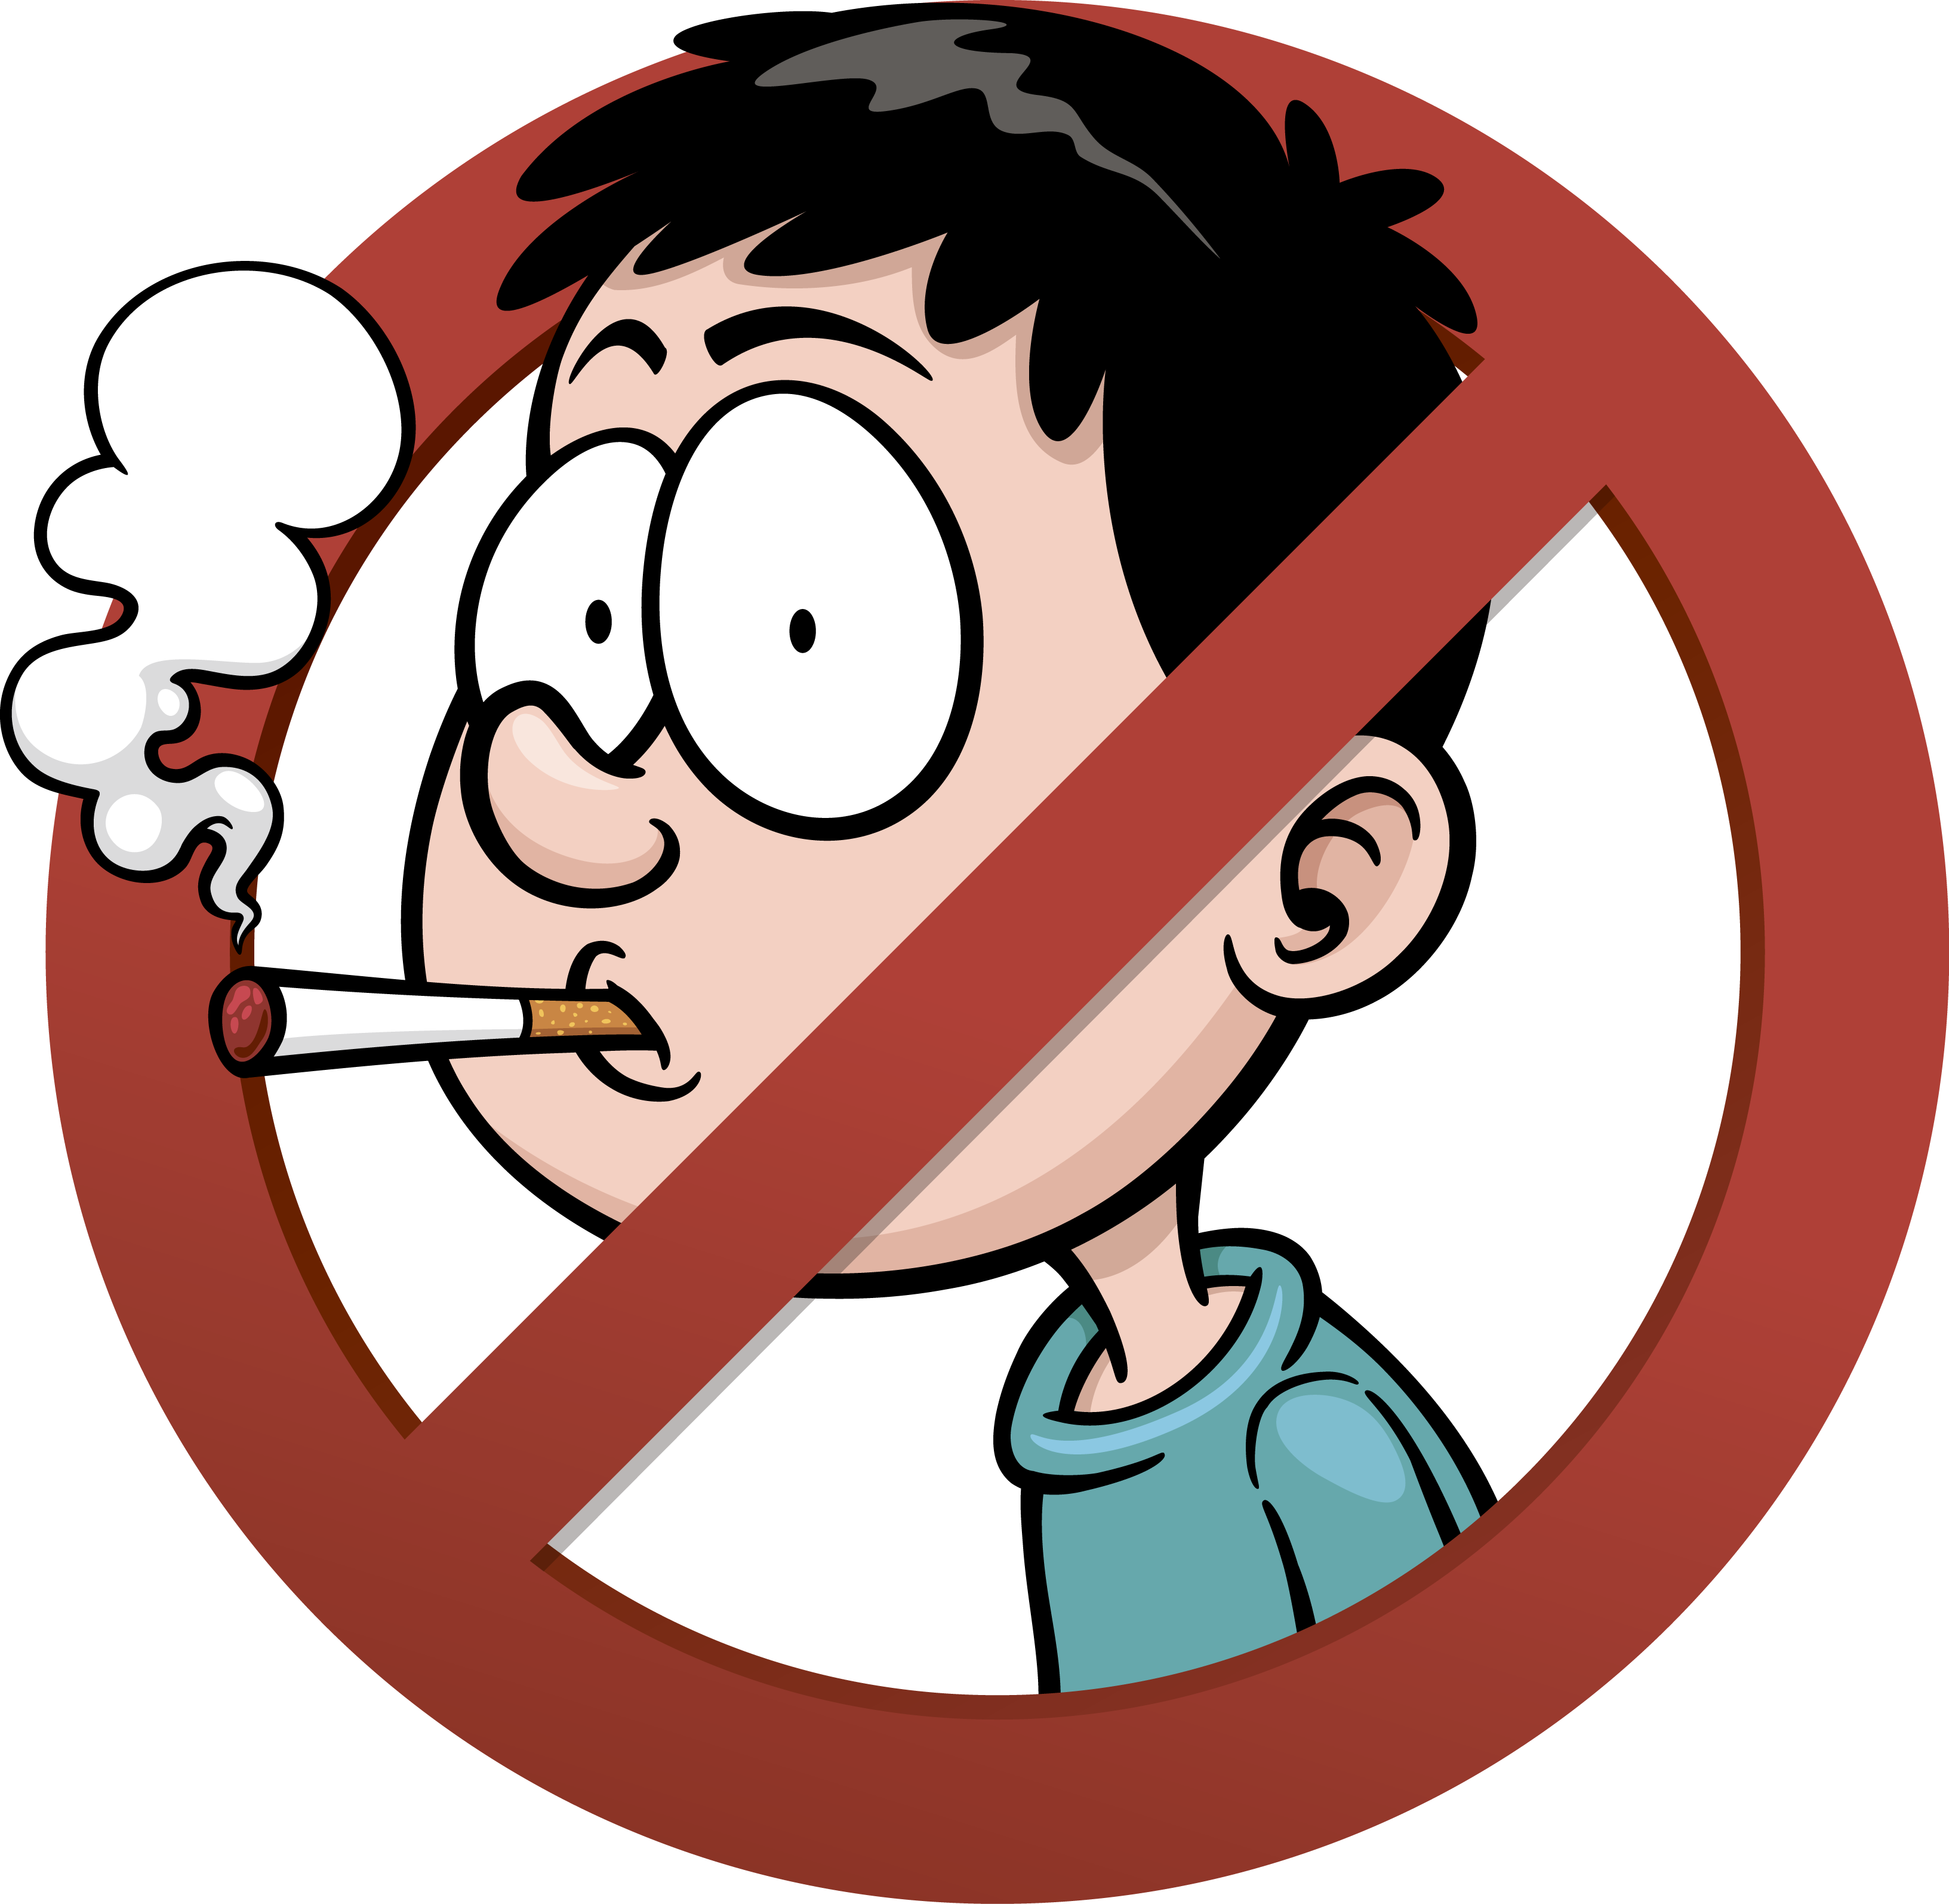 Clipart Mouth Chewing Gum - Clip Art No Smoking - Png ...